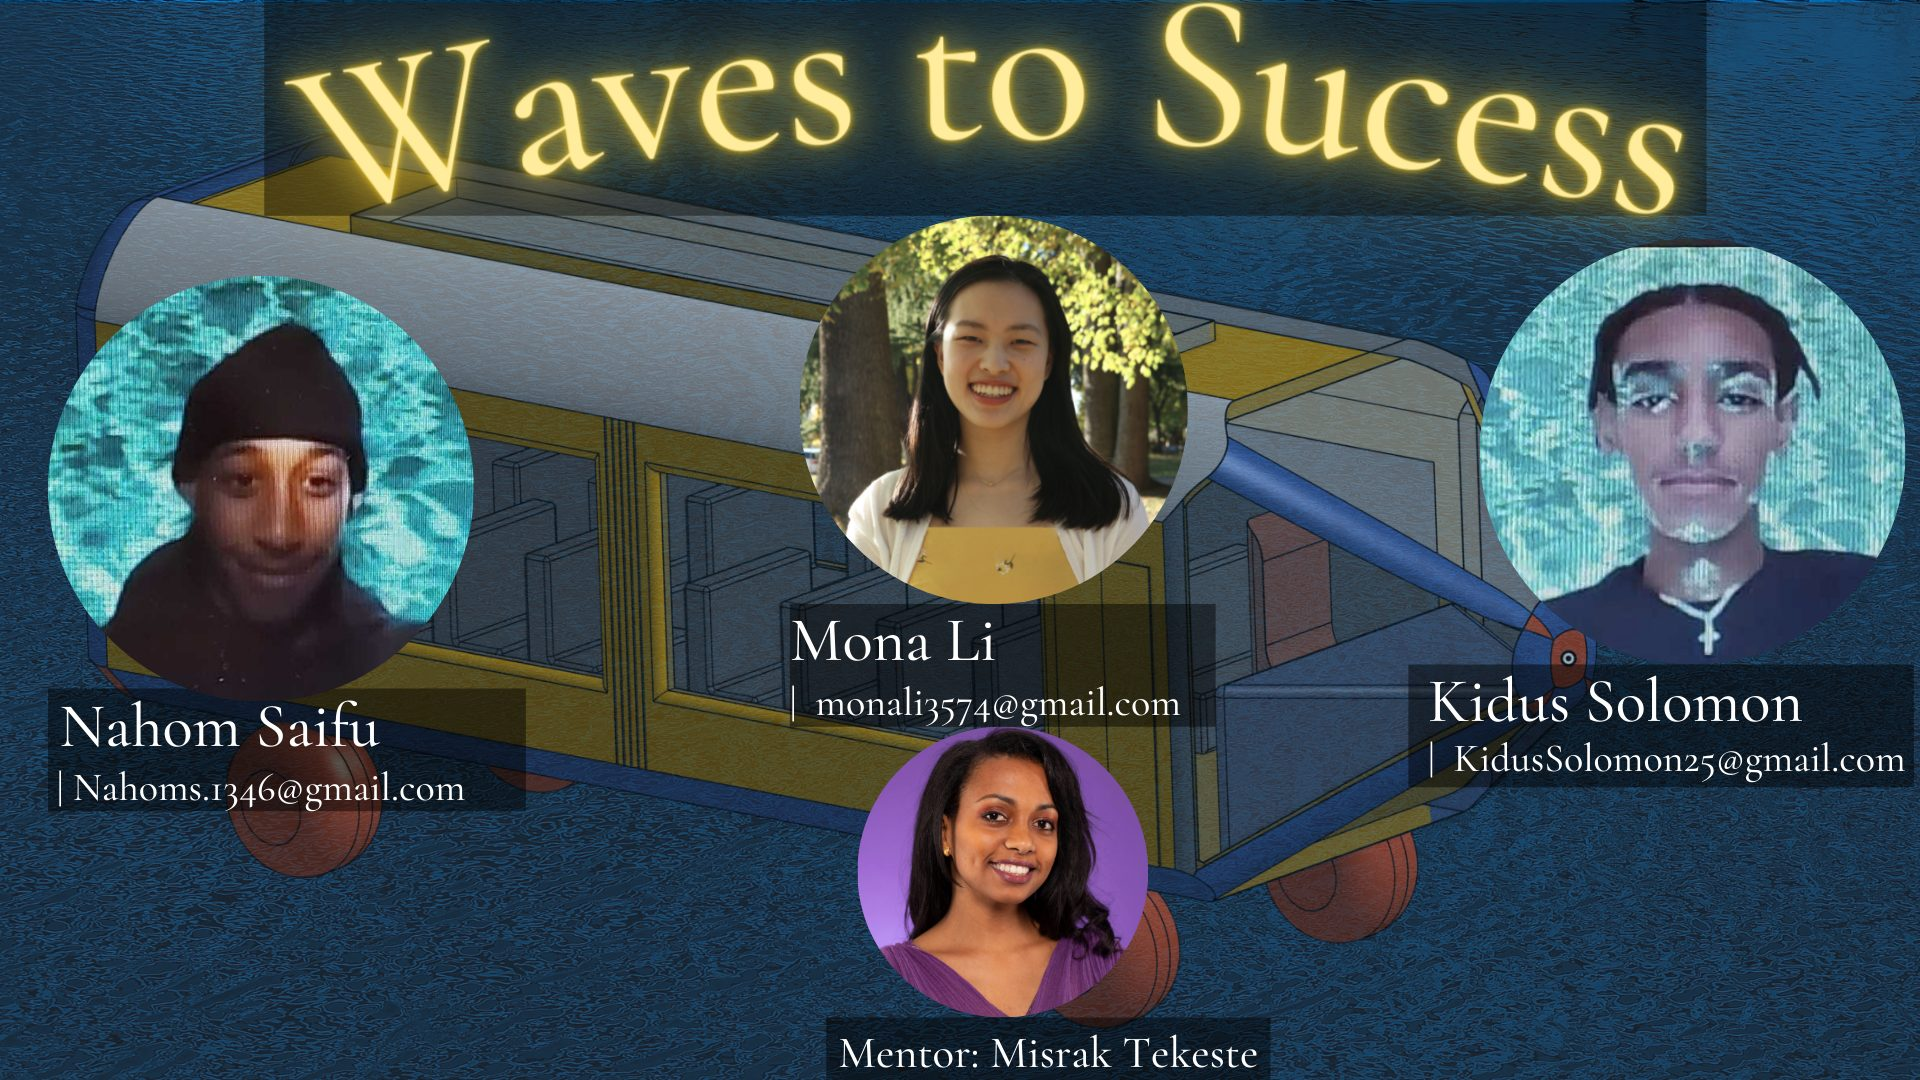 [FFMF] Waves to Success